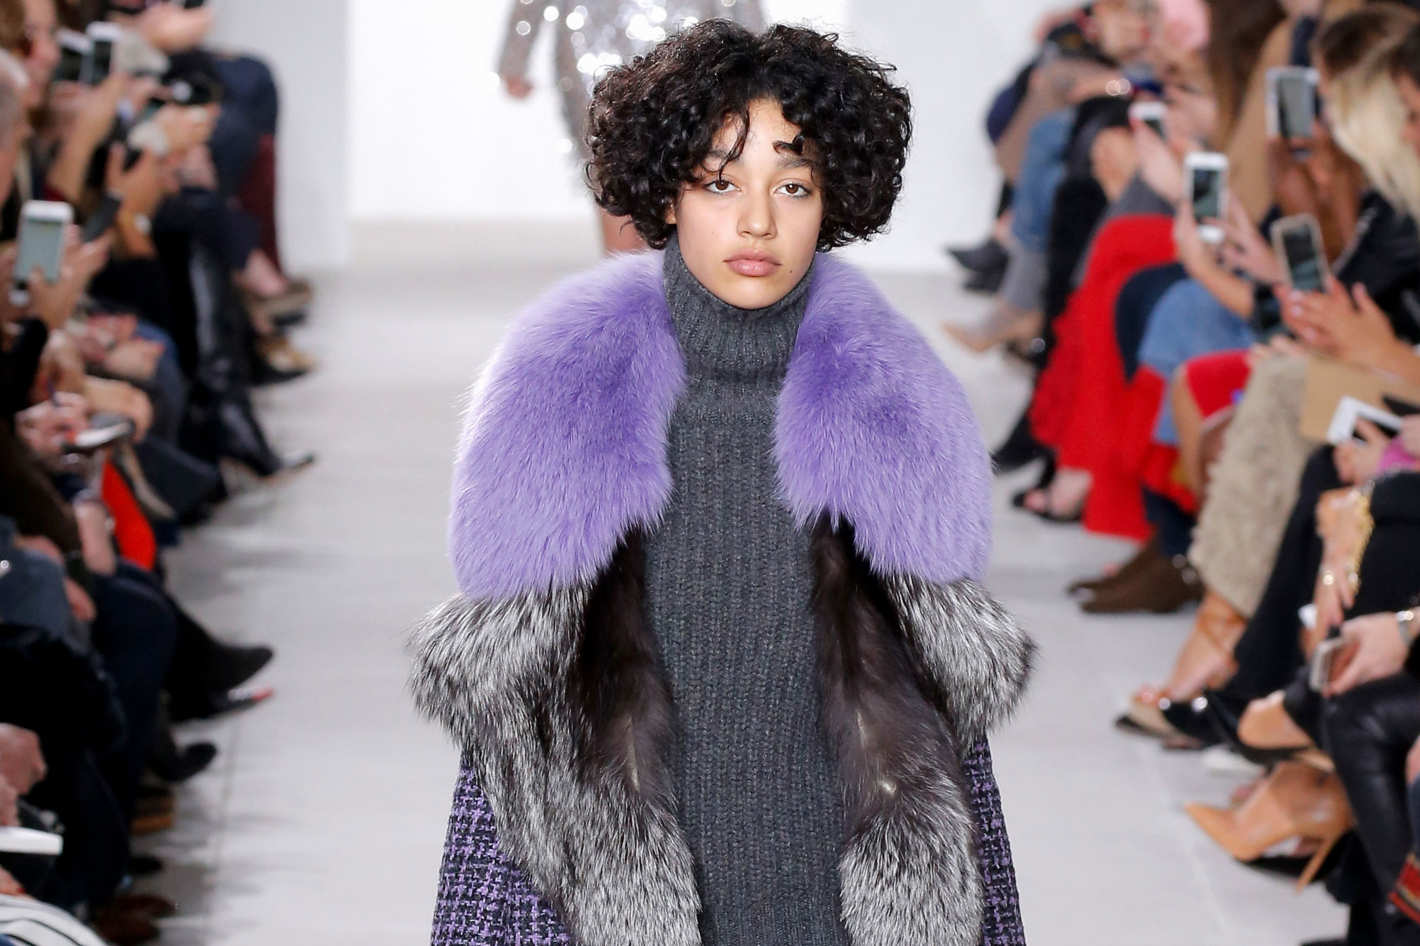 Fur used for fashion Why One Fashion Editor Isnt Ashamed to Wear Real Fur